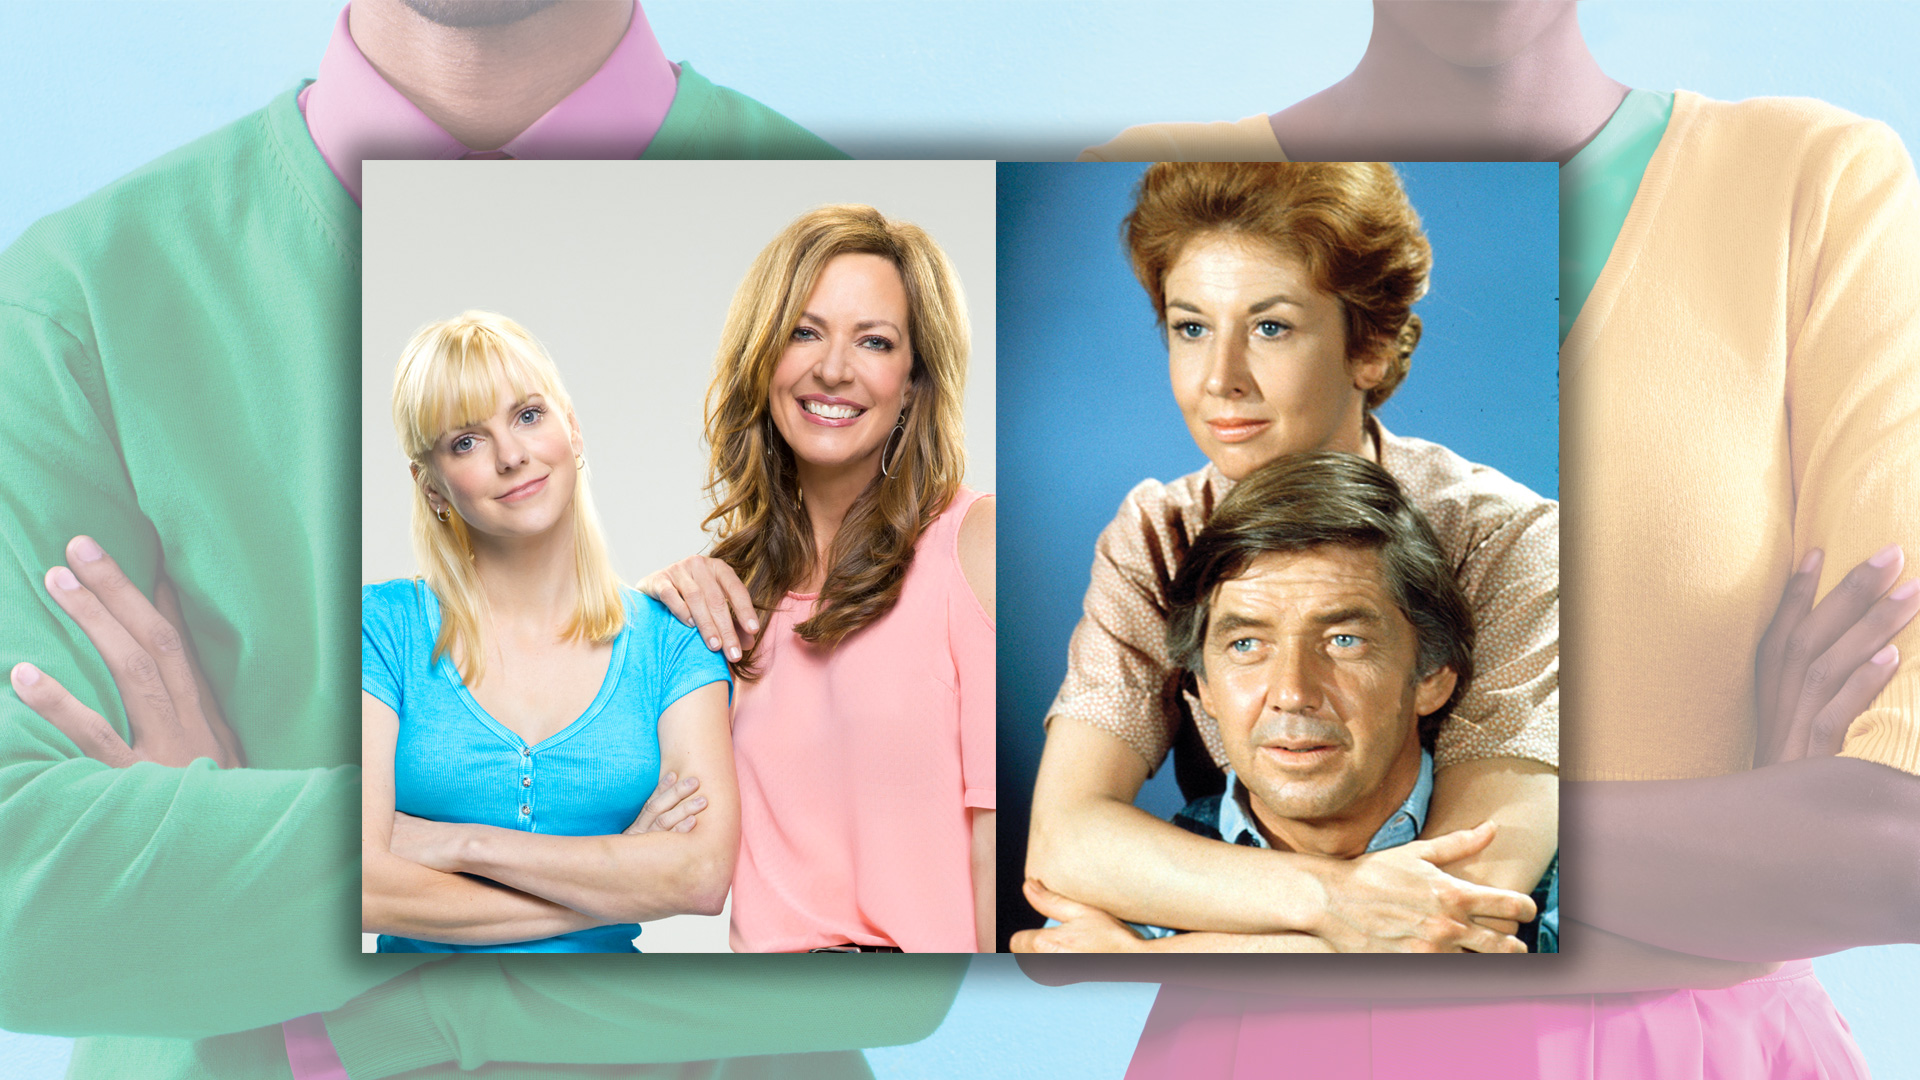 From Mom to The Waltons, these TV parents have a lot to teach us